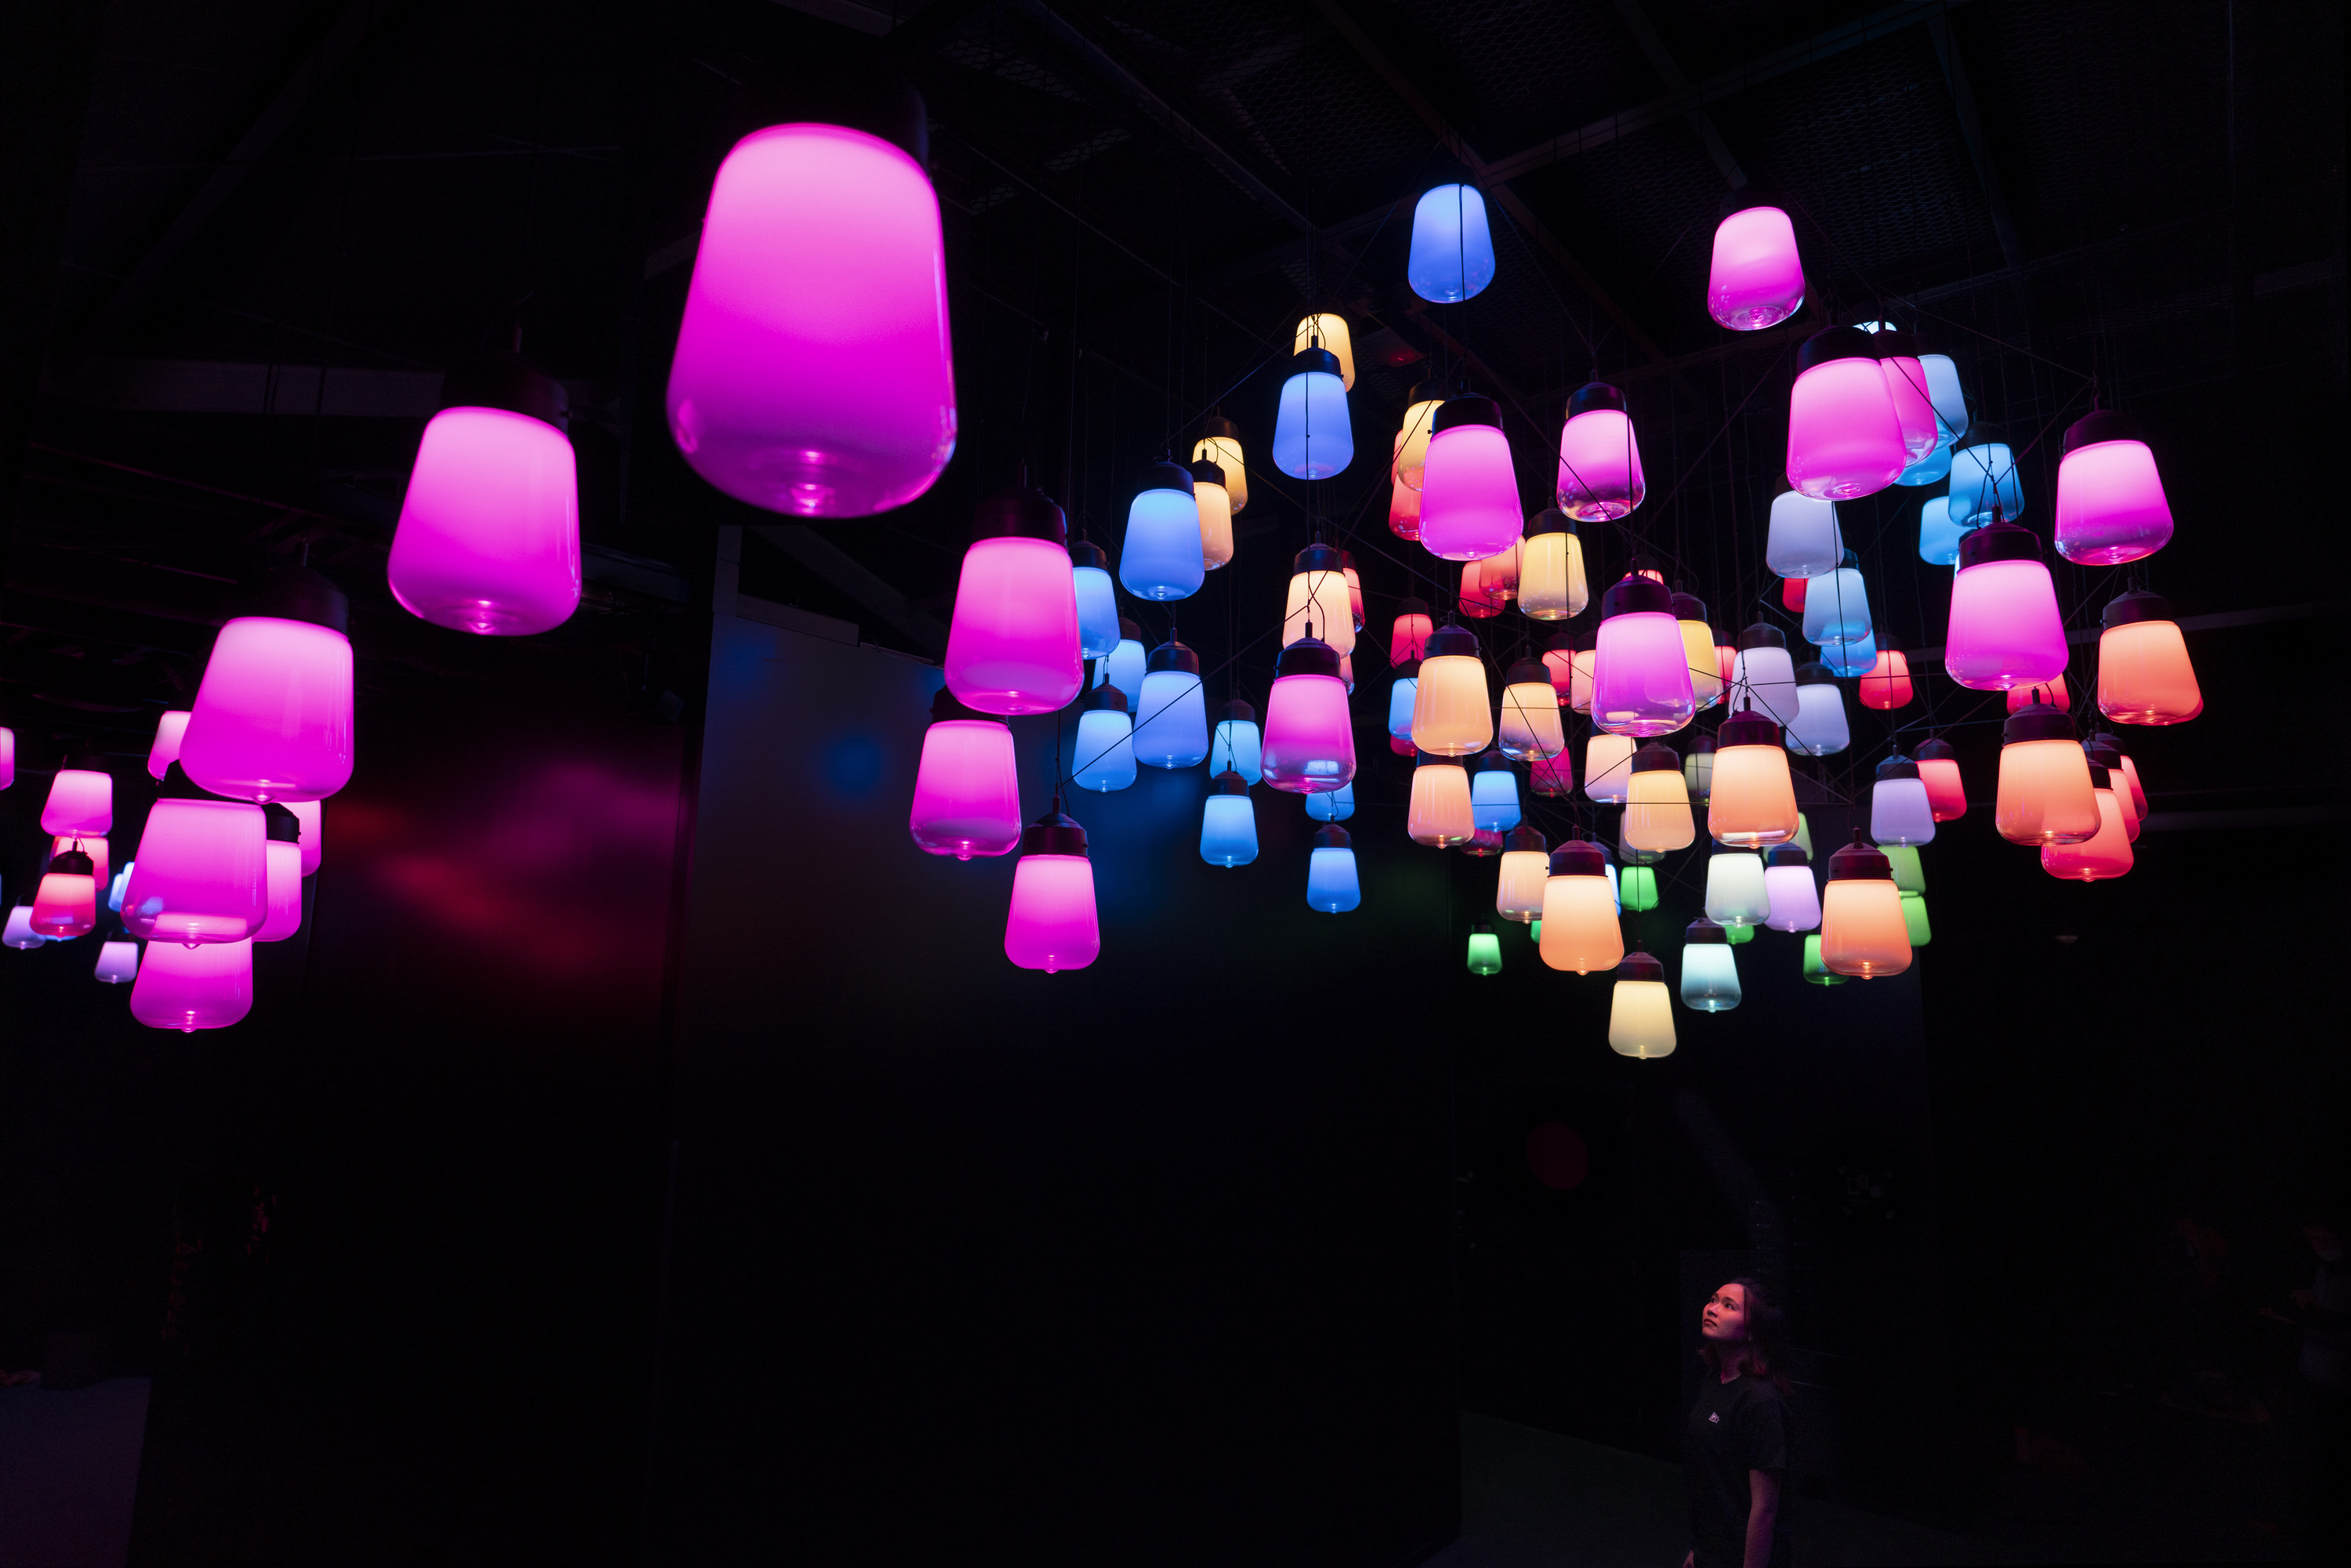 'Array and Spiral of Resonating Lamps - One Stroke, Metropolis Tokyo'